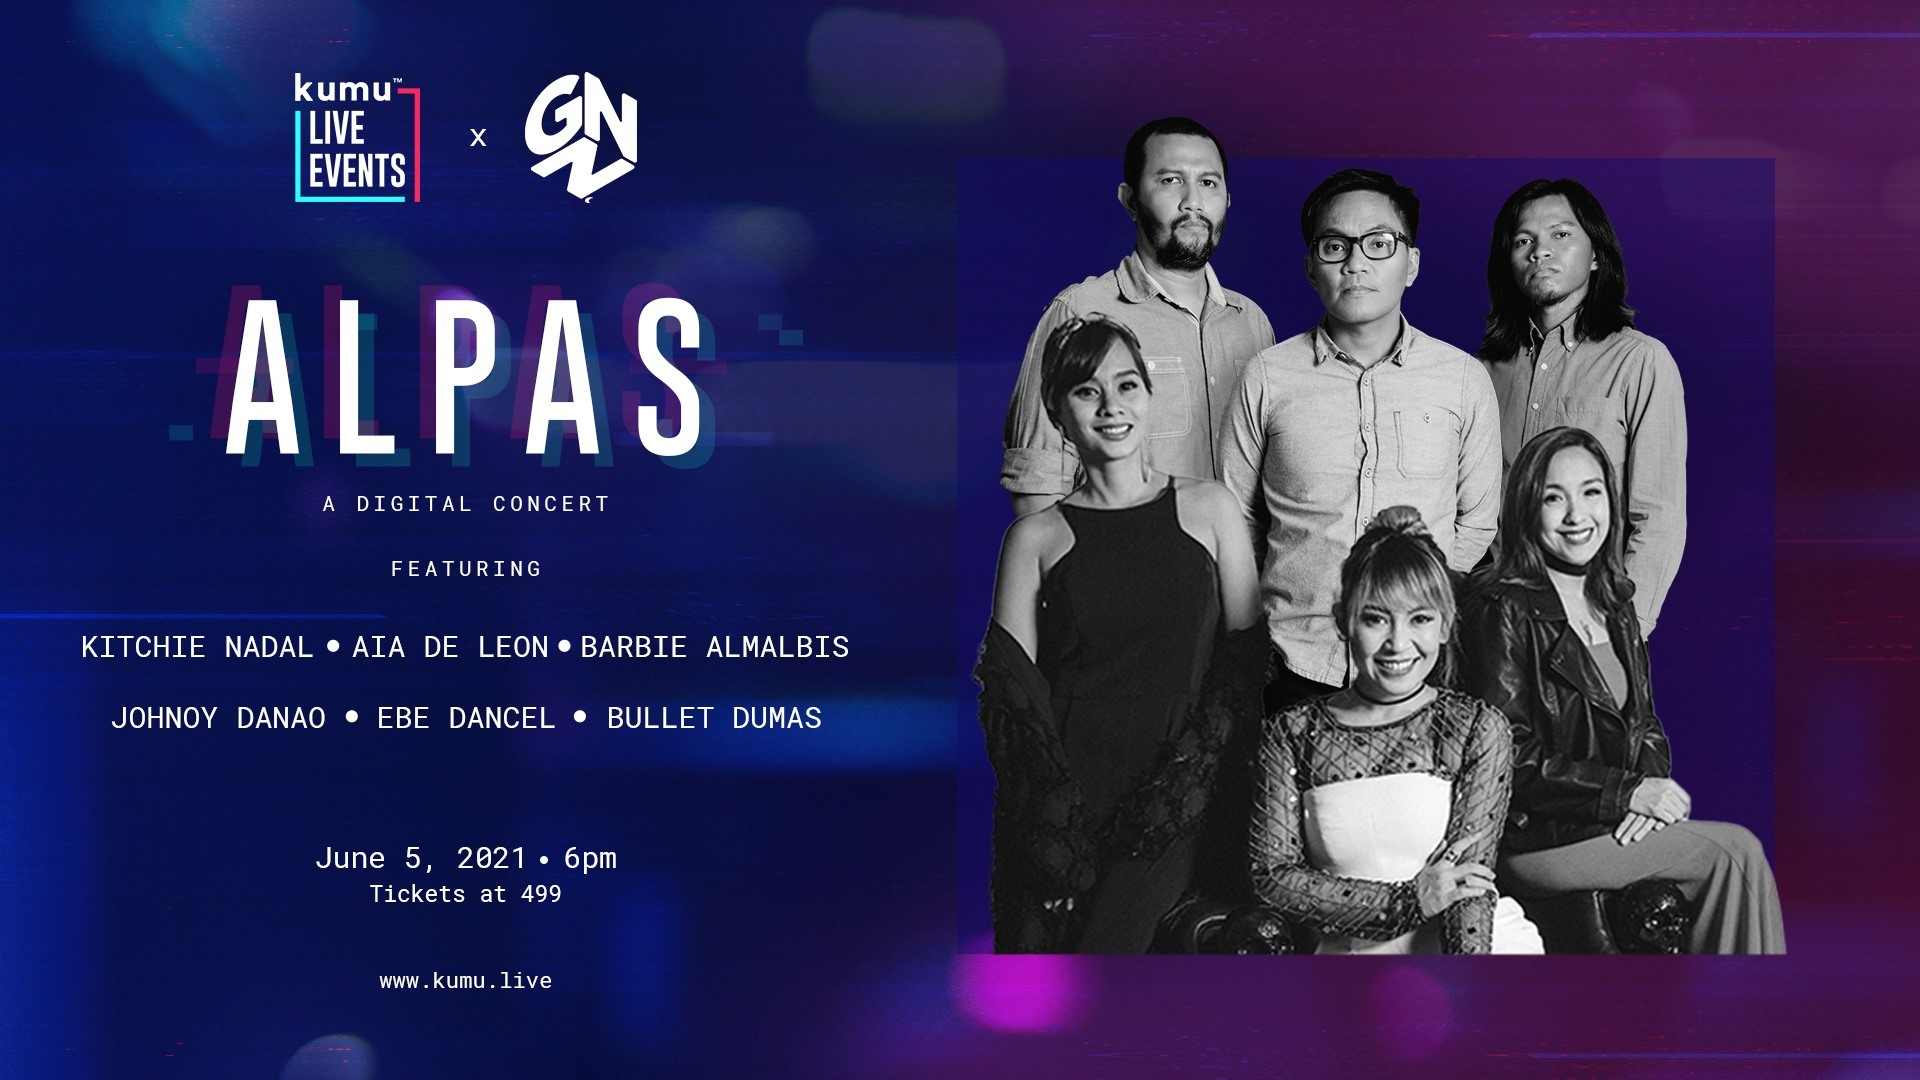 Iconic Filipino Singer-Songwriters To Take The Virtual Stage For 'ALPAS' Concert